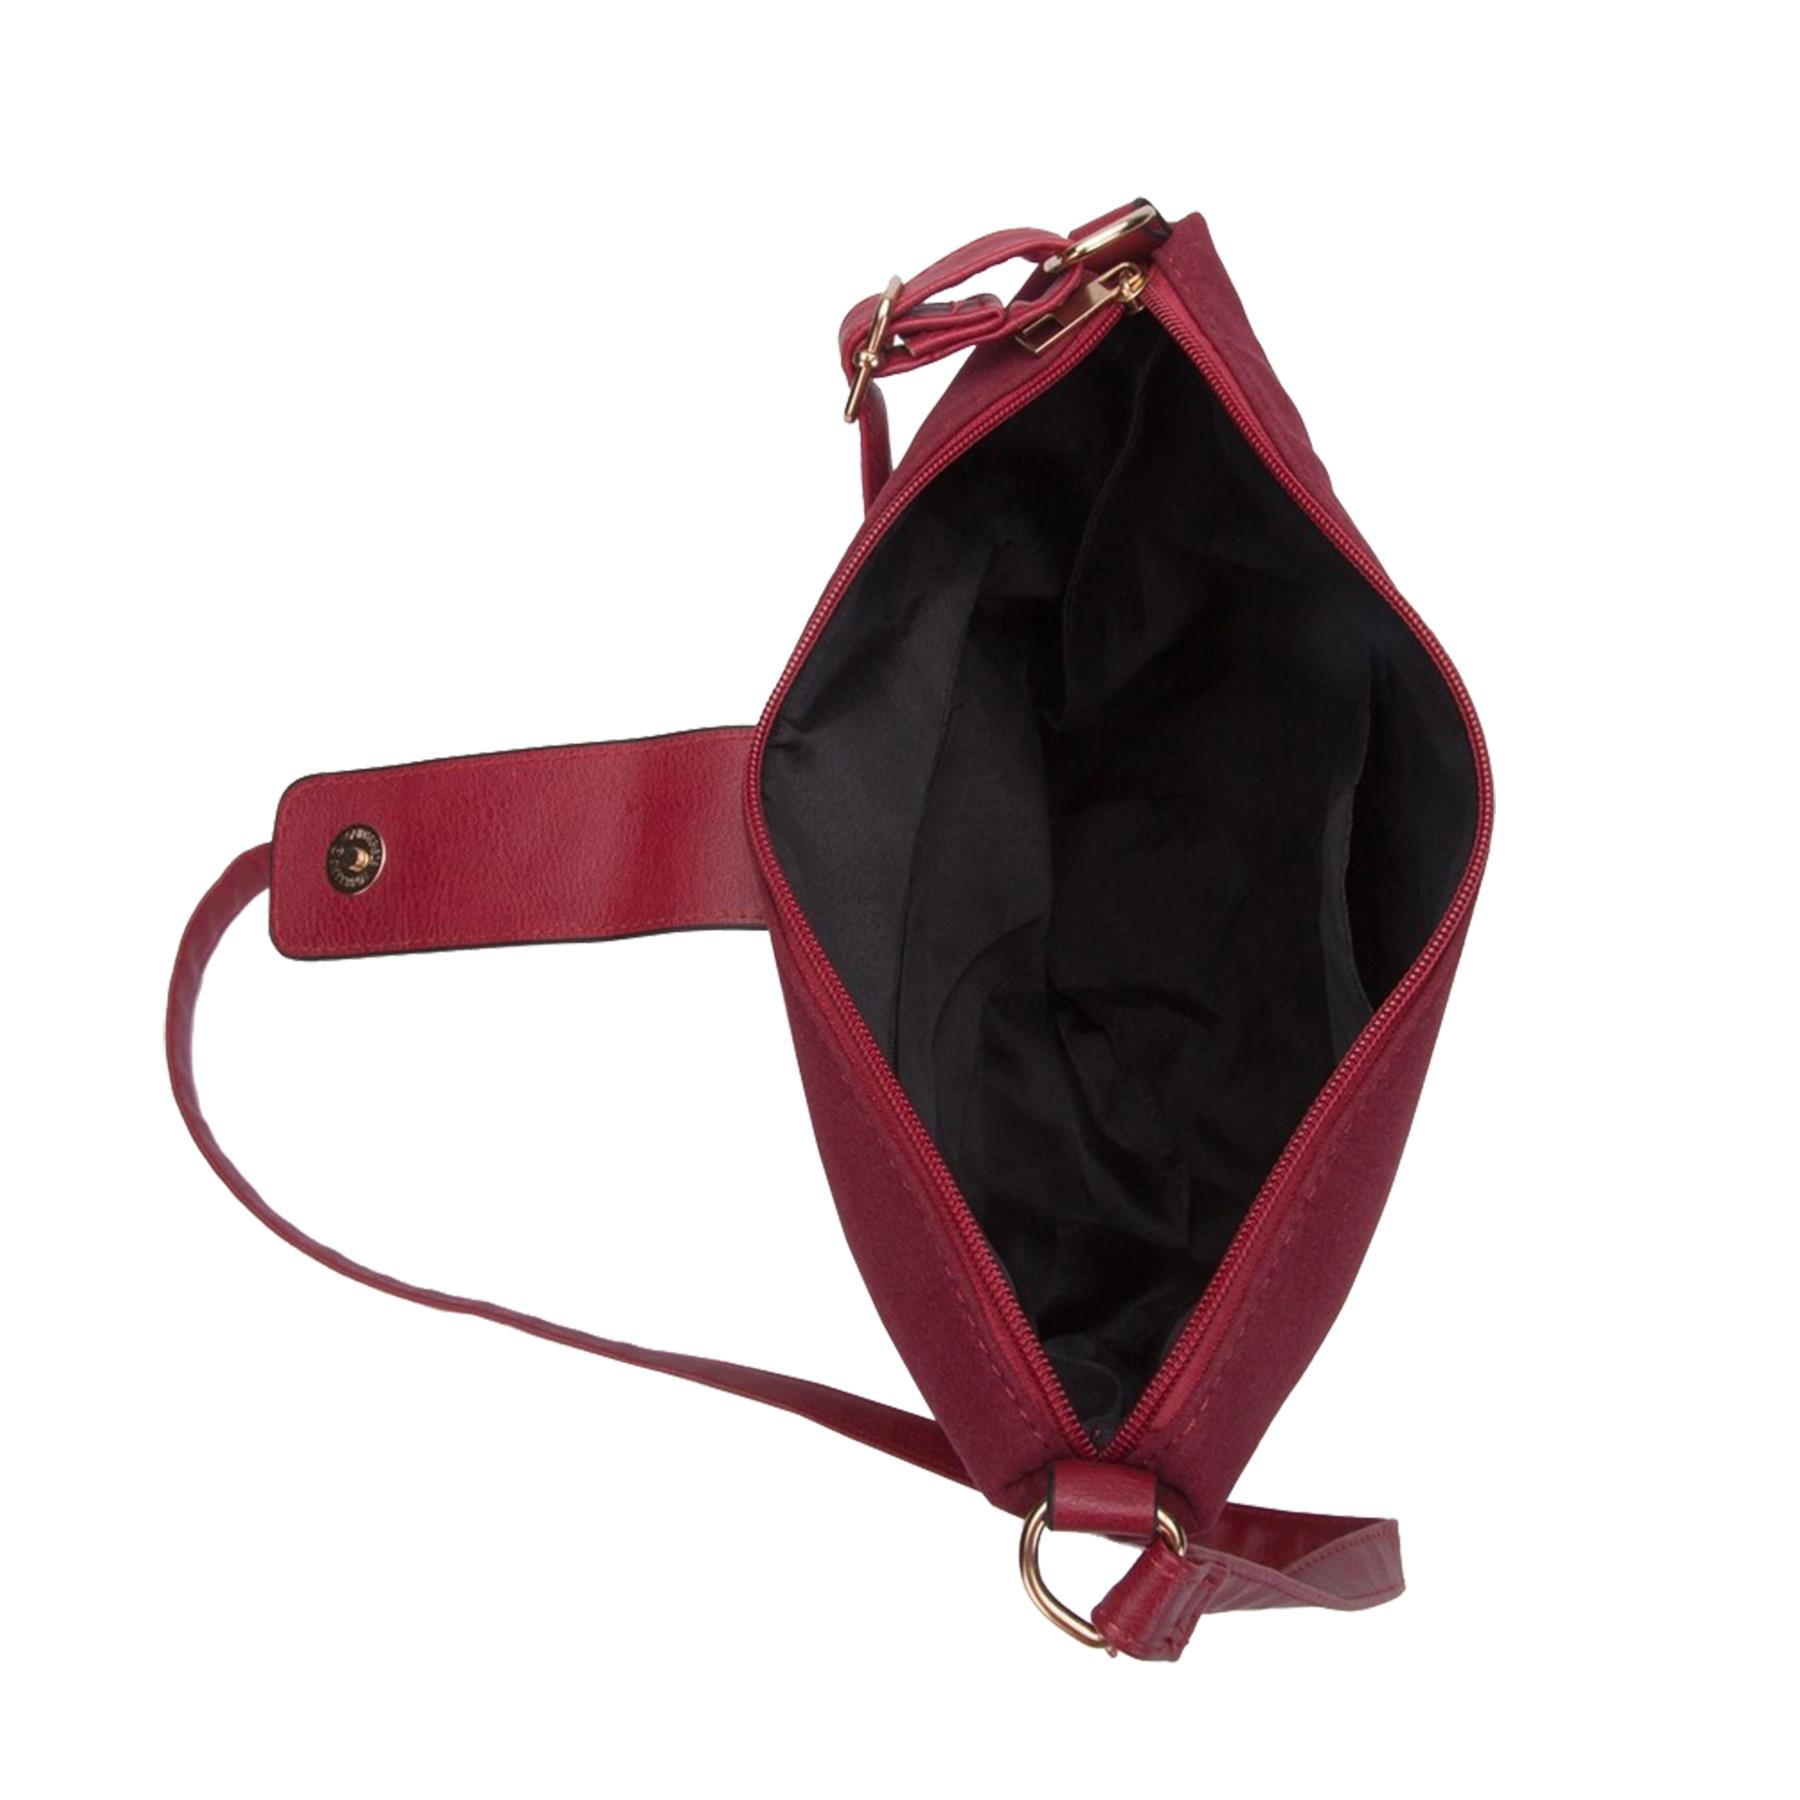 New-Ladies-Two-Toned-Faux-Leather-Fashion-Shoulder-Cross-Body-Bag thumbnail 7